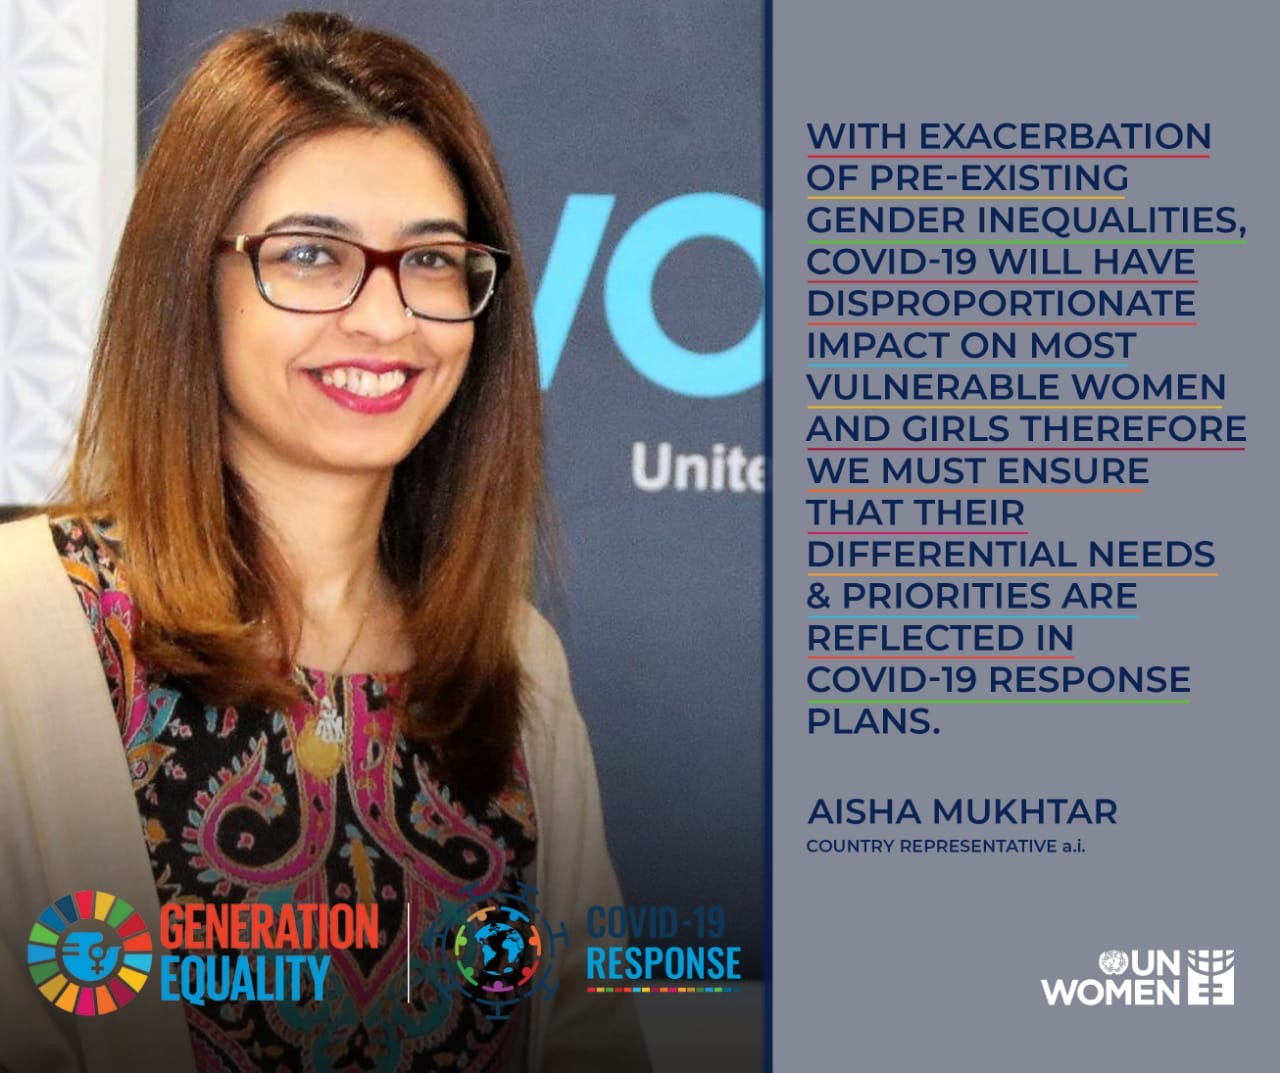 Ayesha Mukhtar has been working to integrate gender in preparedness and response plans towards Covid-19